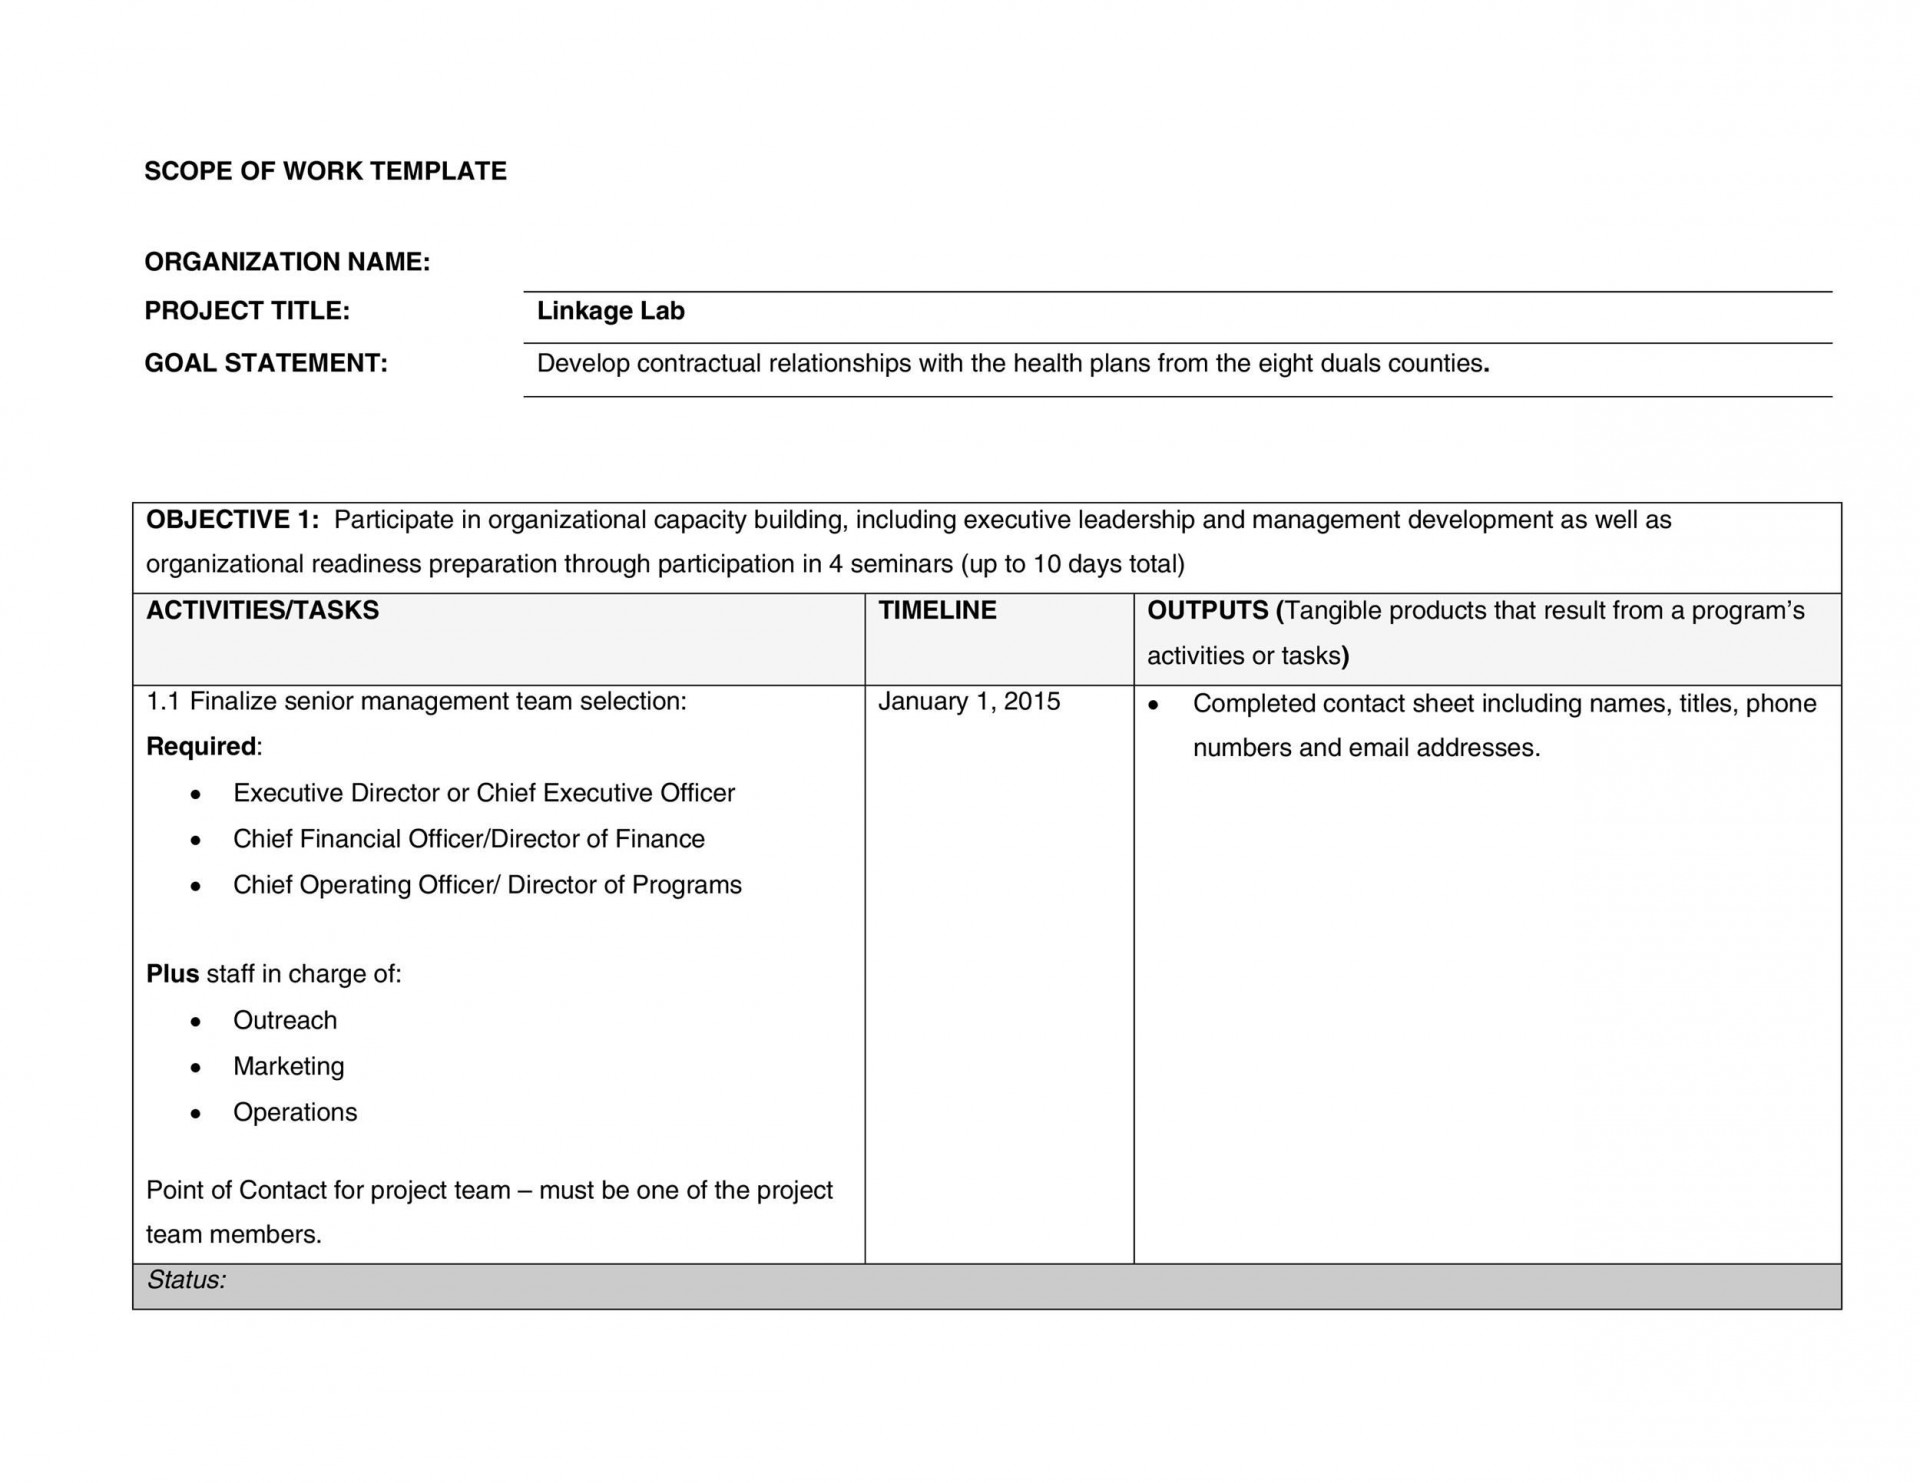 006 Shocking Simple Scope Of Work Template Highest Clarity  Example Sample Excel1920